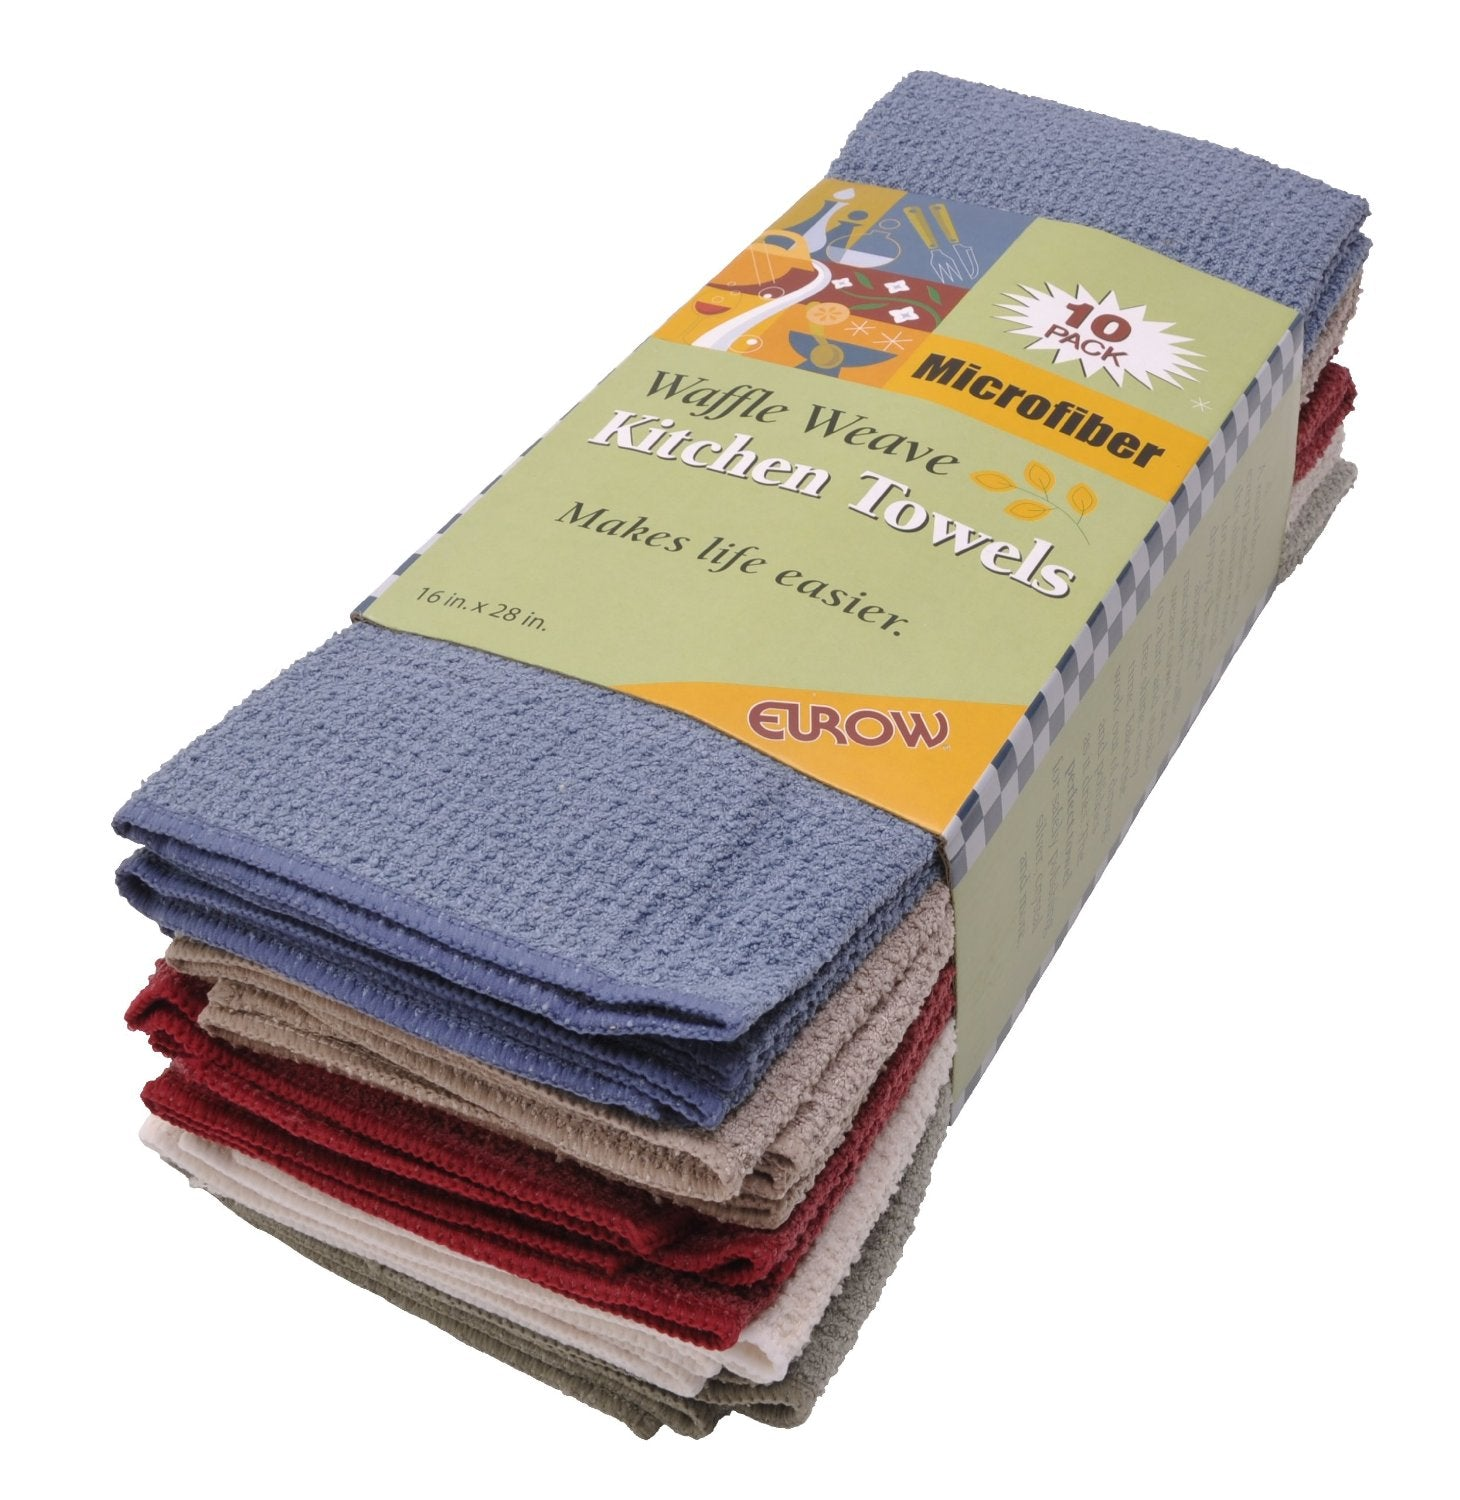 Eurow Microfiber Waffle Weave Fast Dry Kitchen Towels (10 Pack)